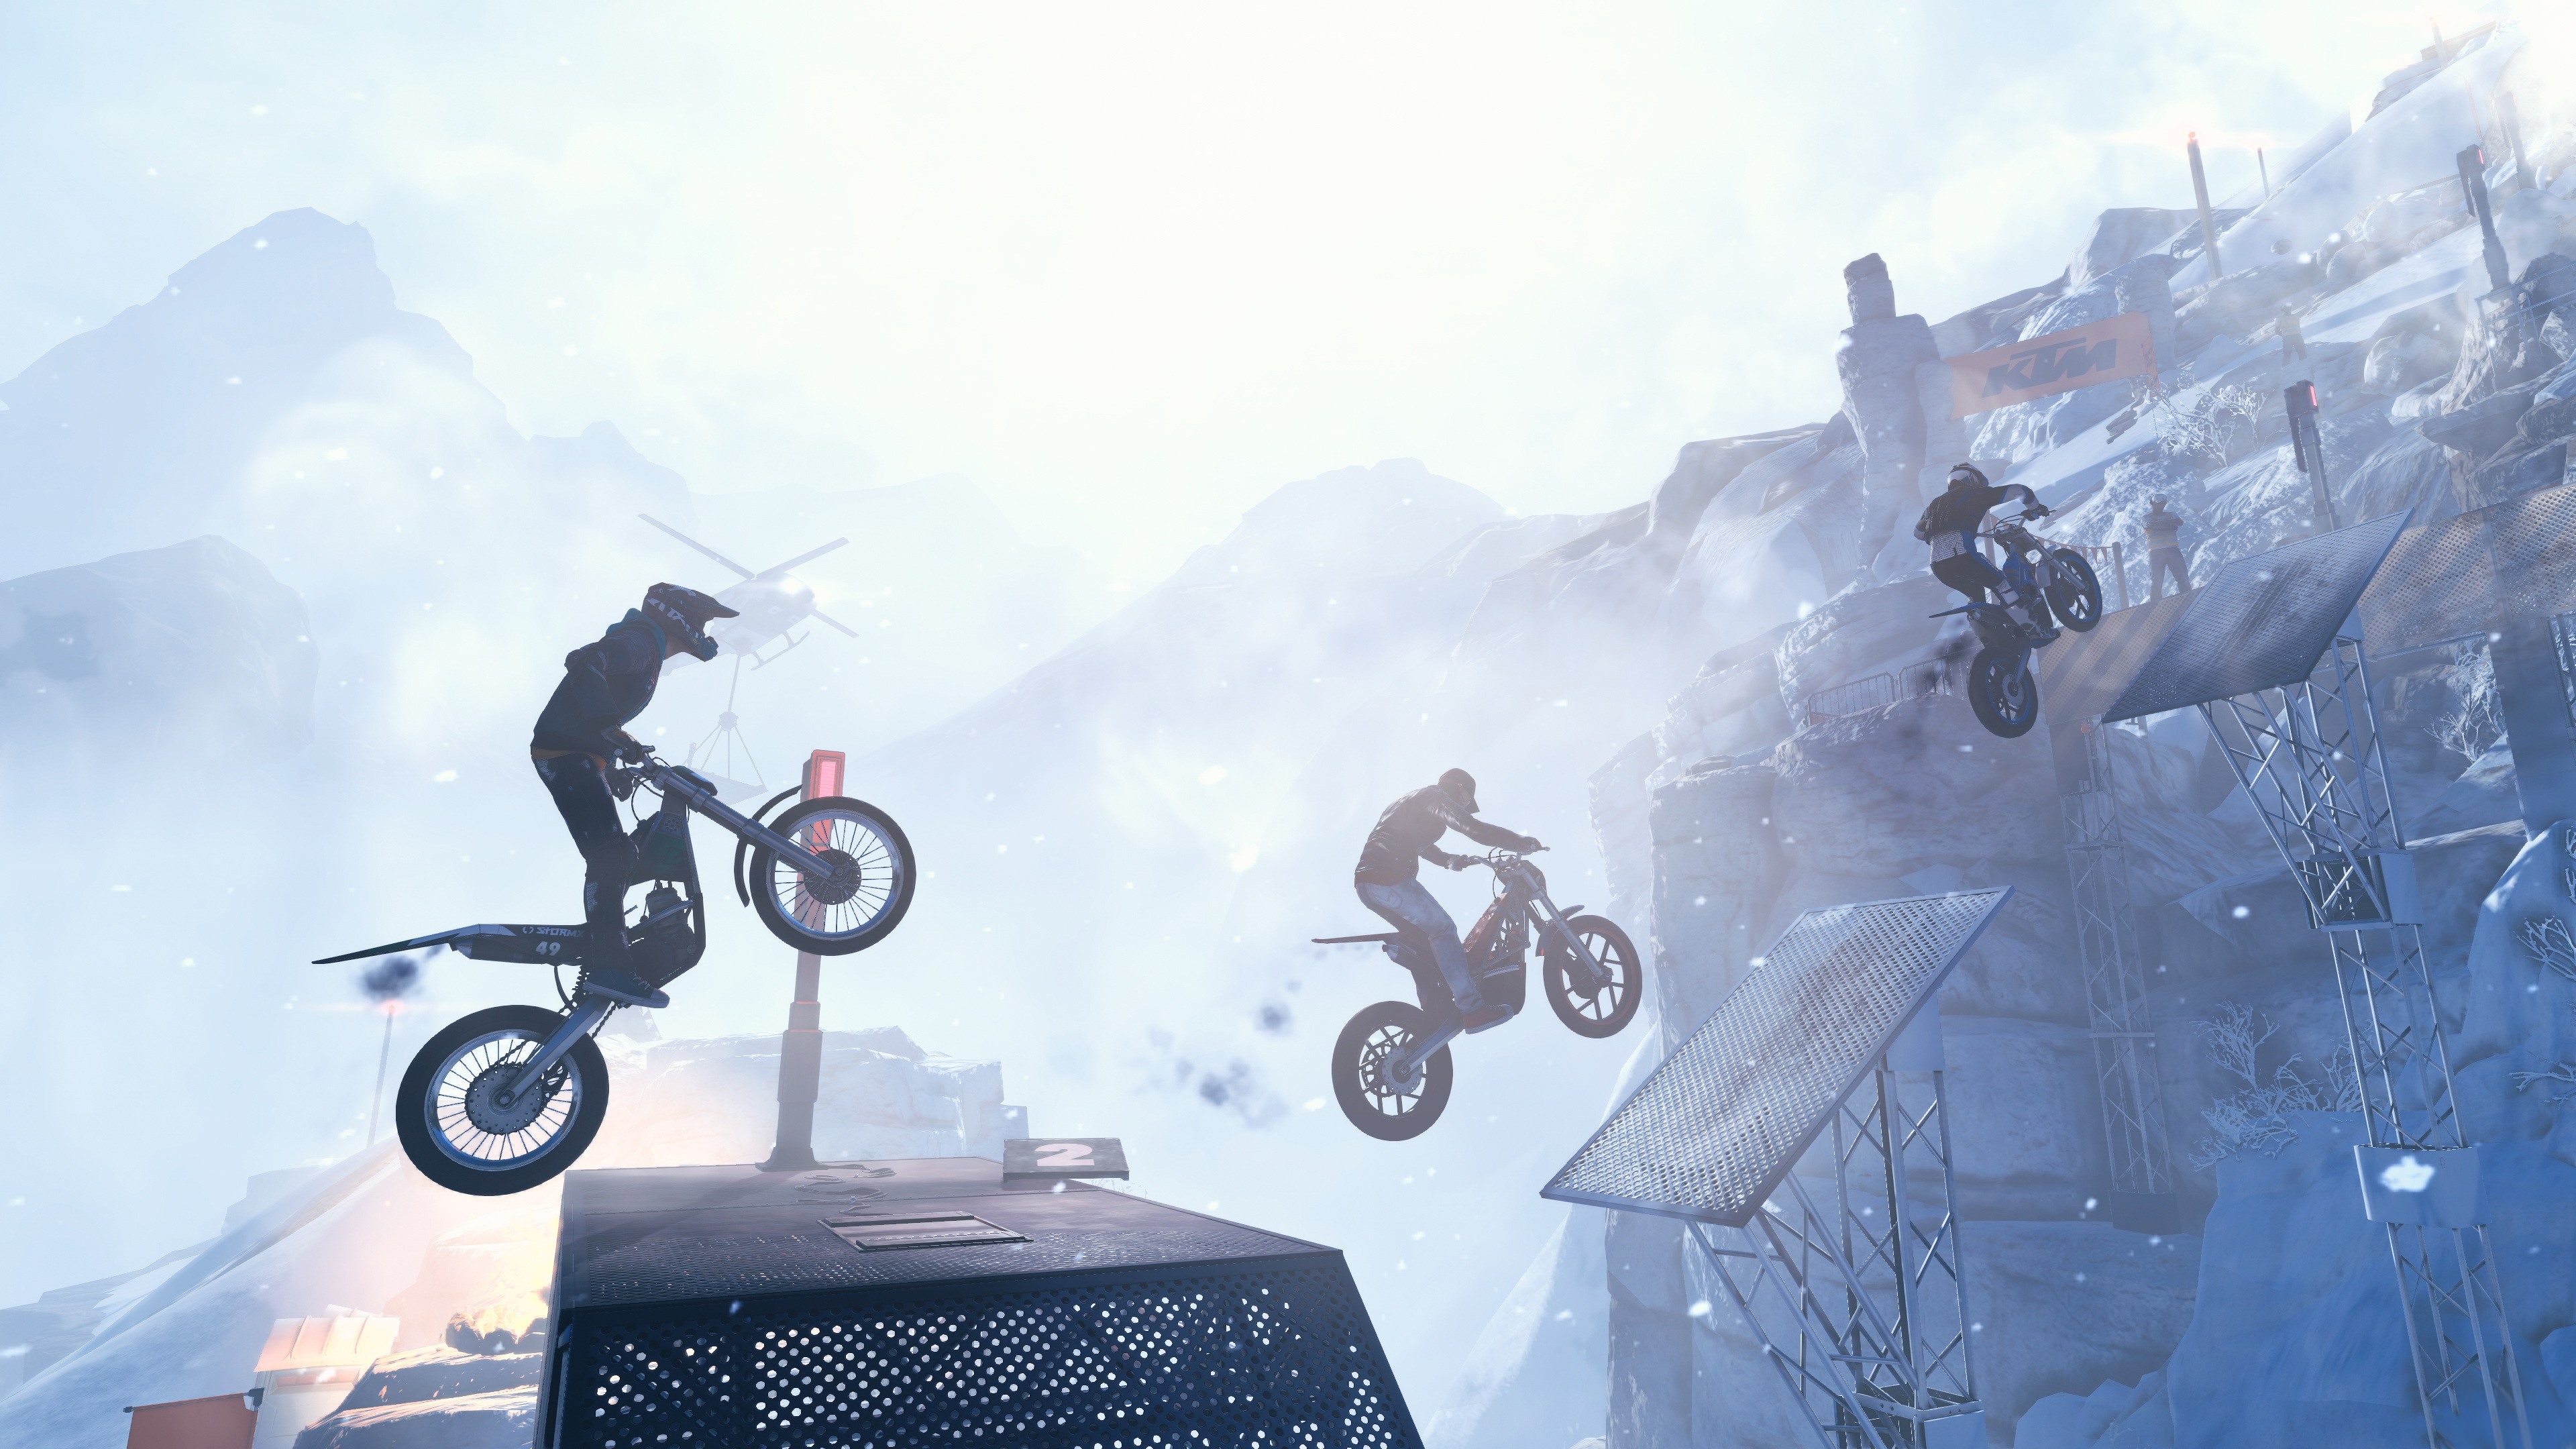 Trials Rising 4k Ultra HD Wallpaper Background Image 3840x2160 3840x2160